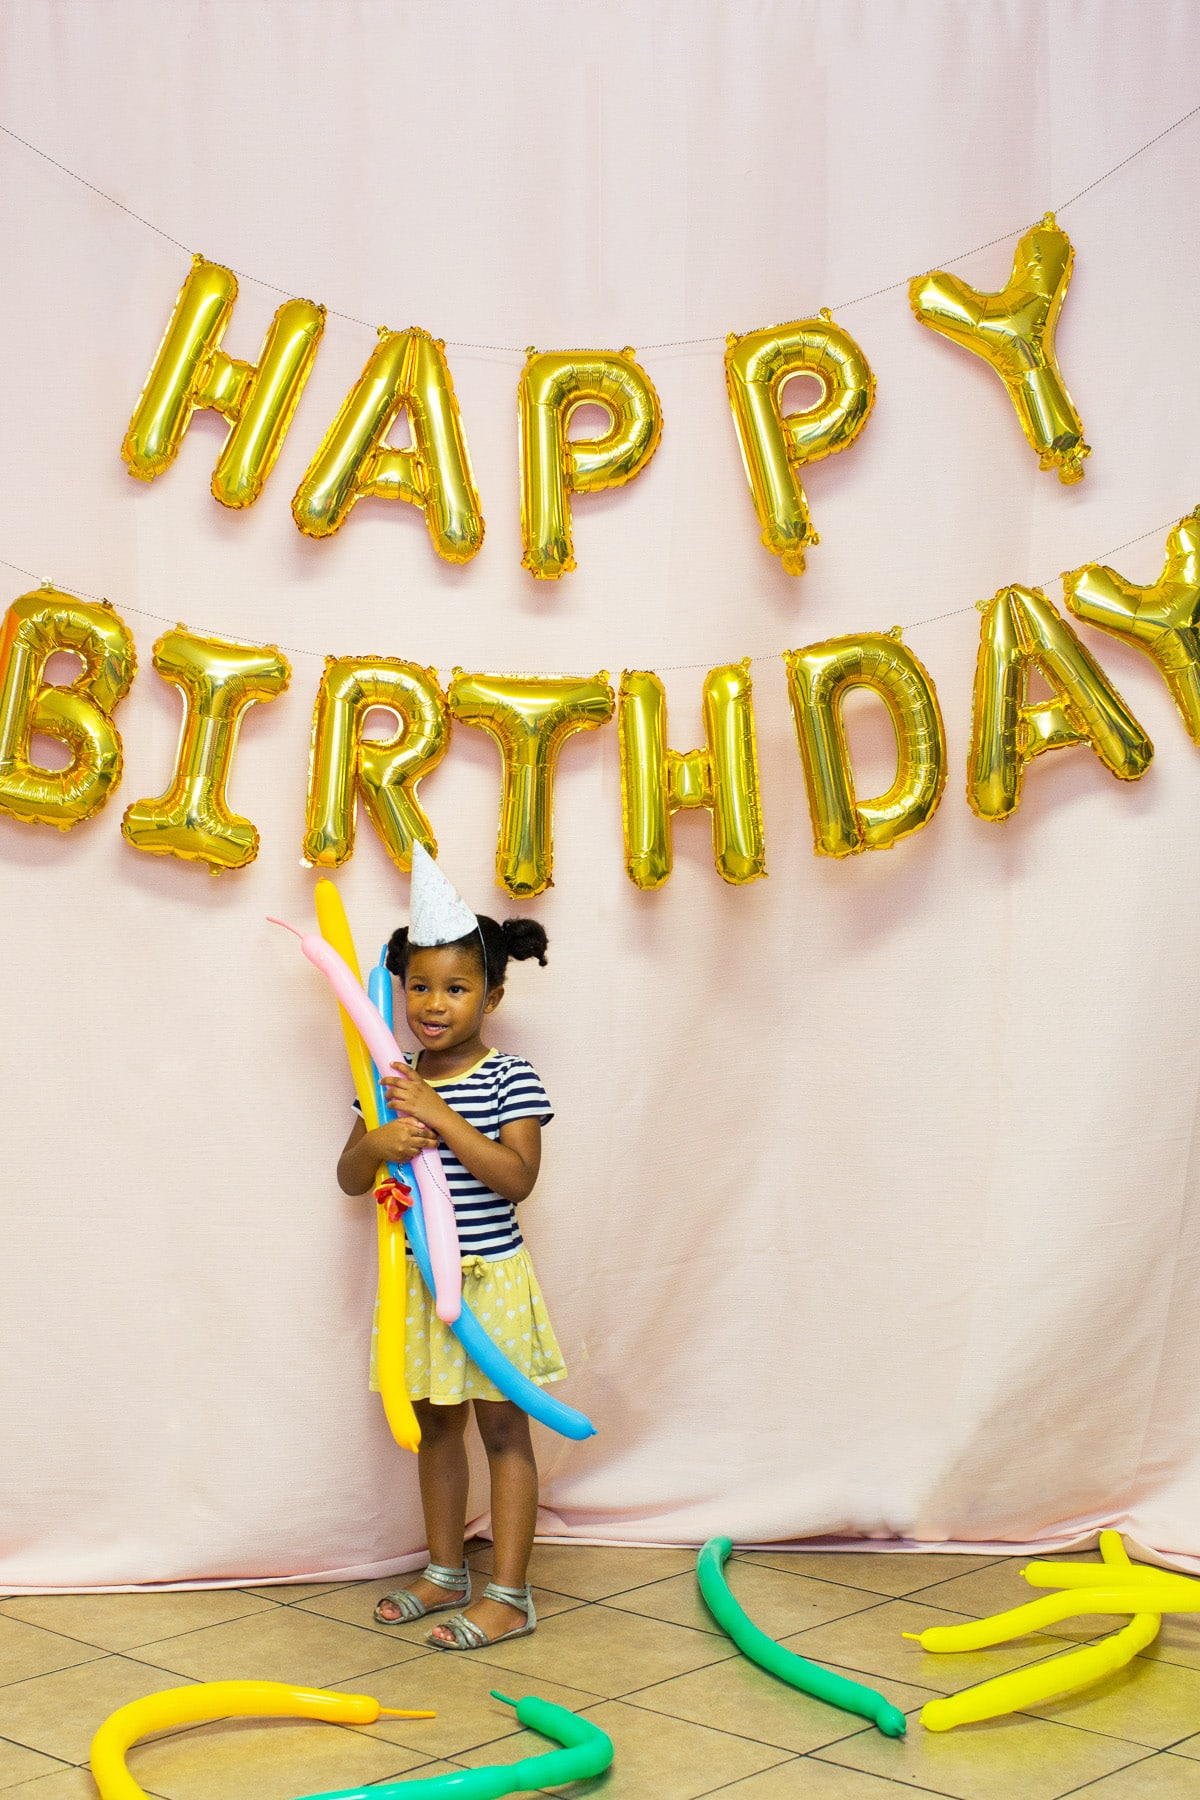 The Birthday Party Project + How To Throw A Kids Art Party! by top Houston lifestyle blogger Ashley Rose of Sugar & Cloth